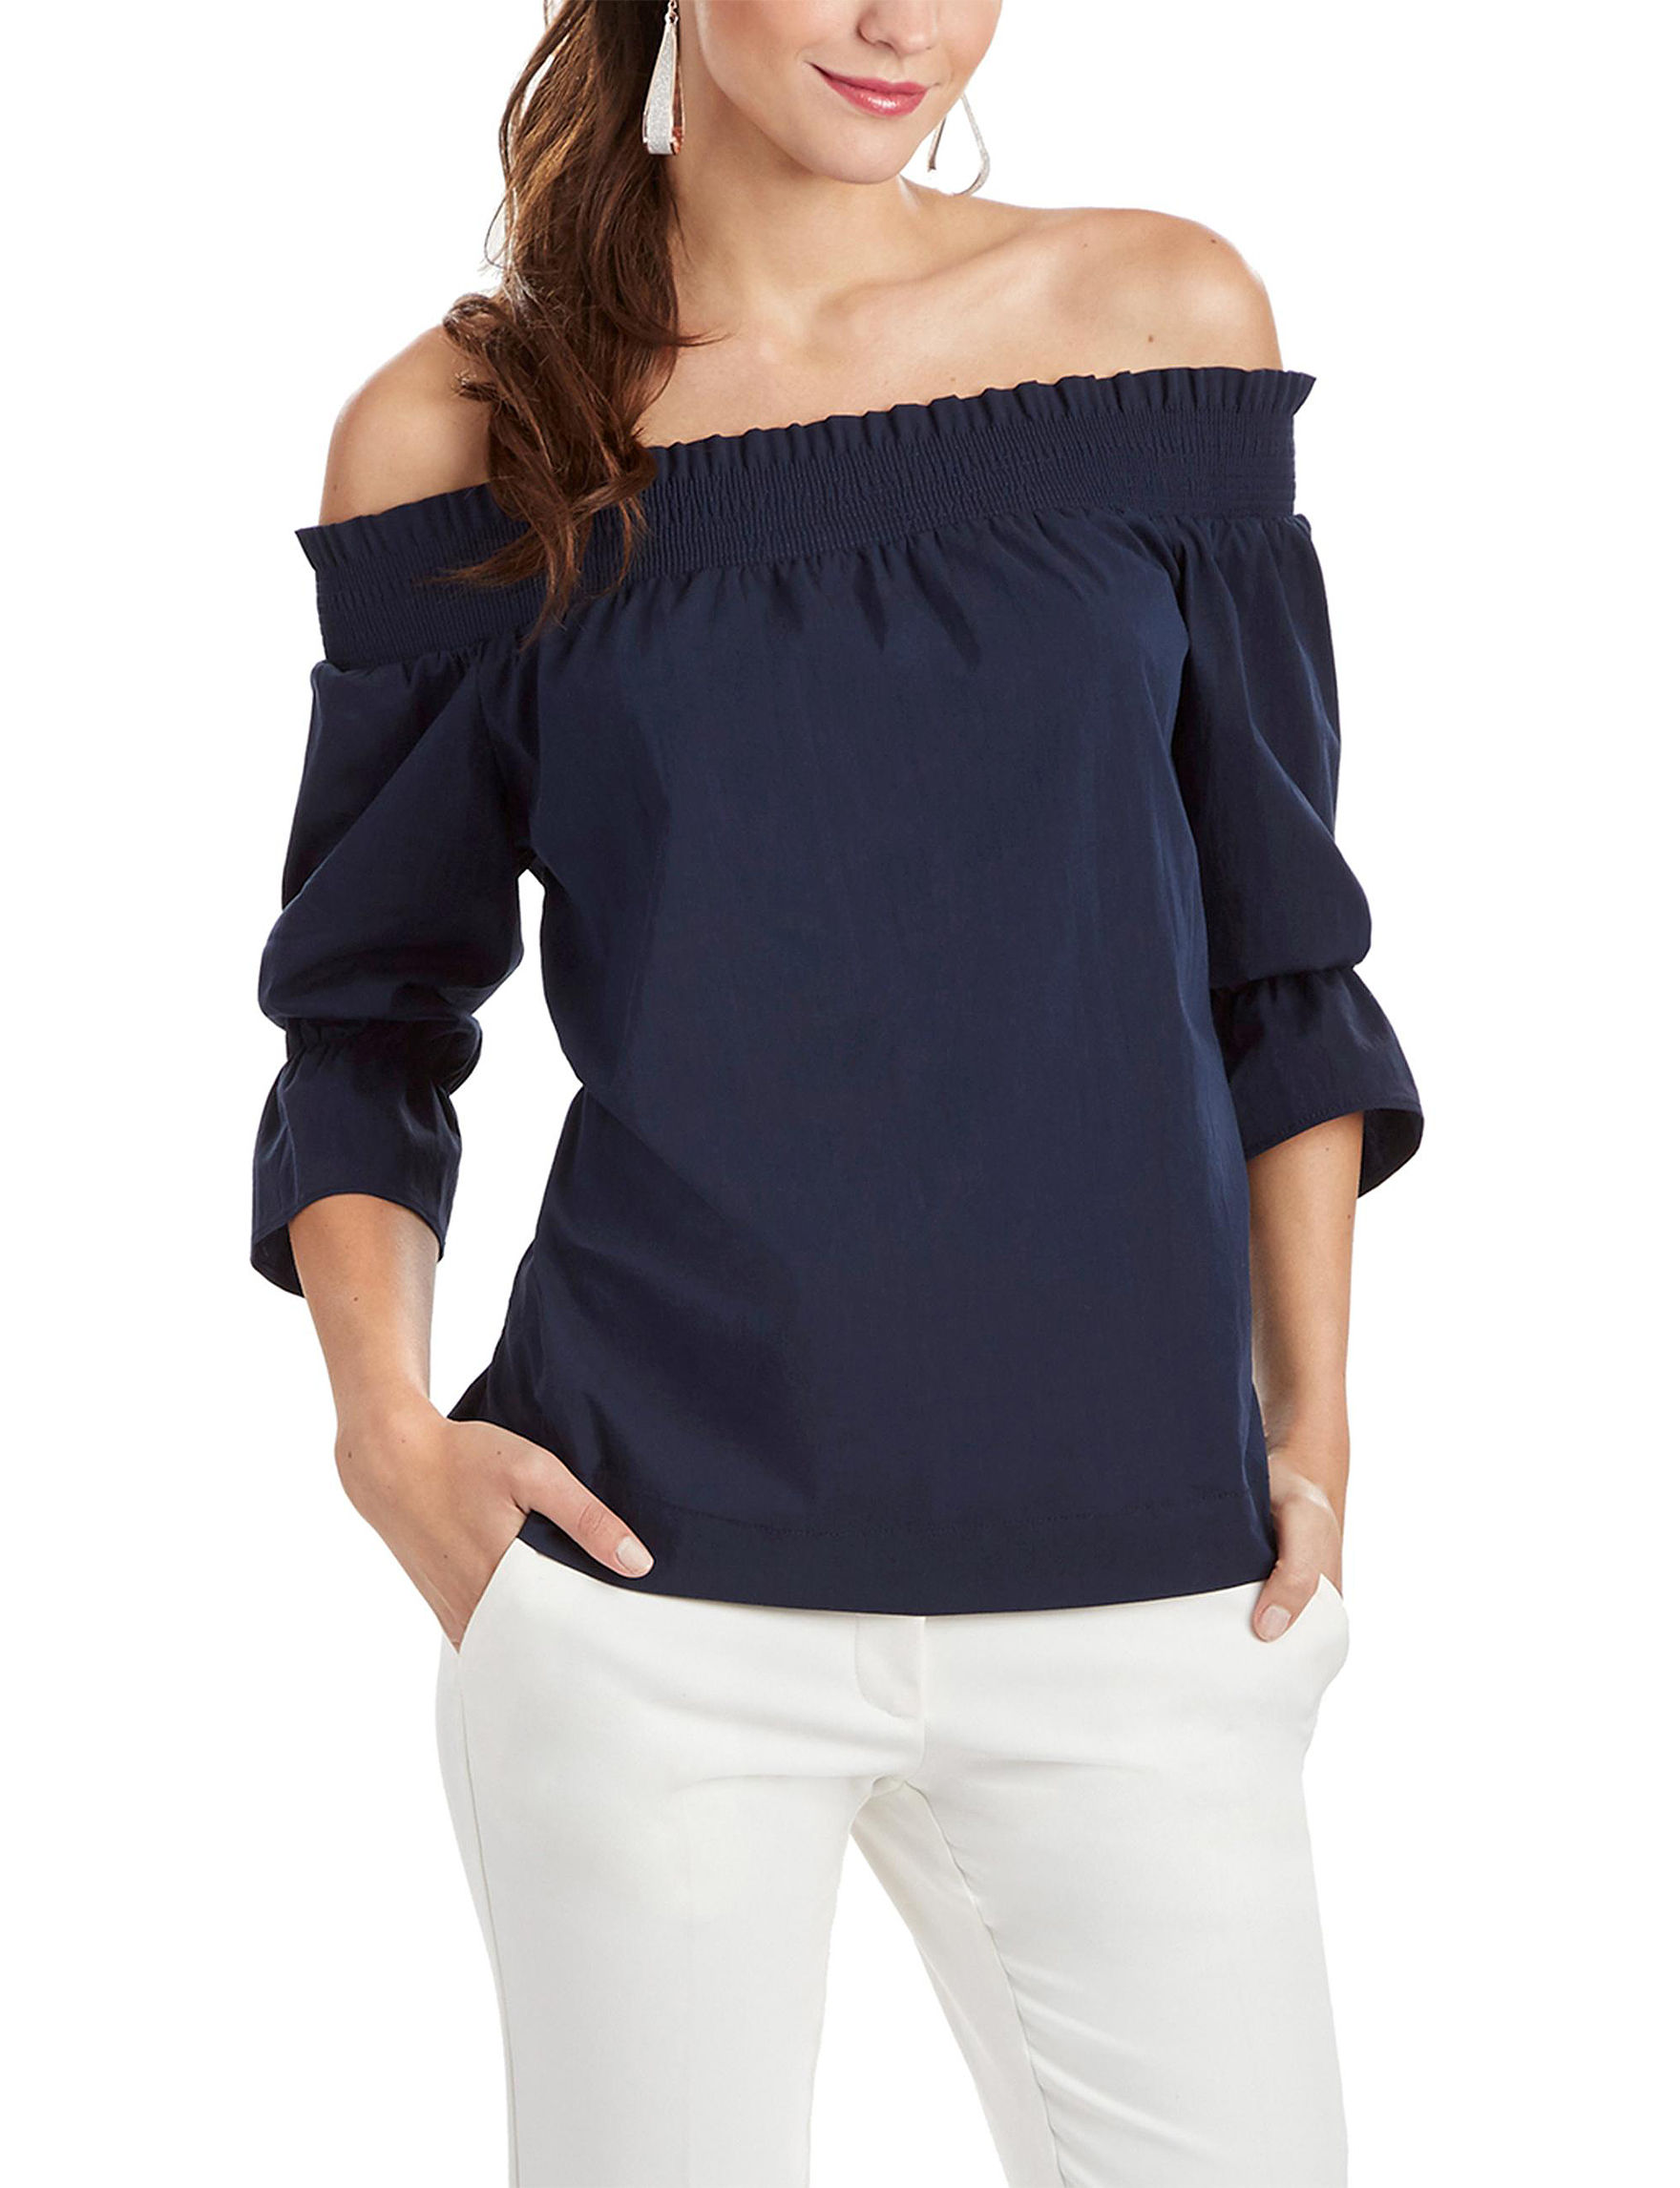 XOXO Navy Shirts & Blouses